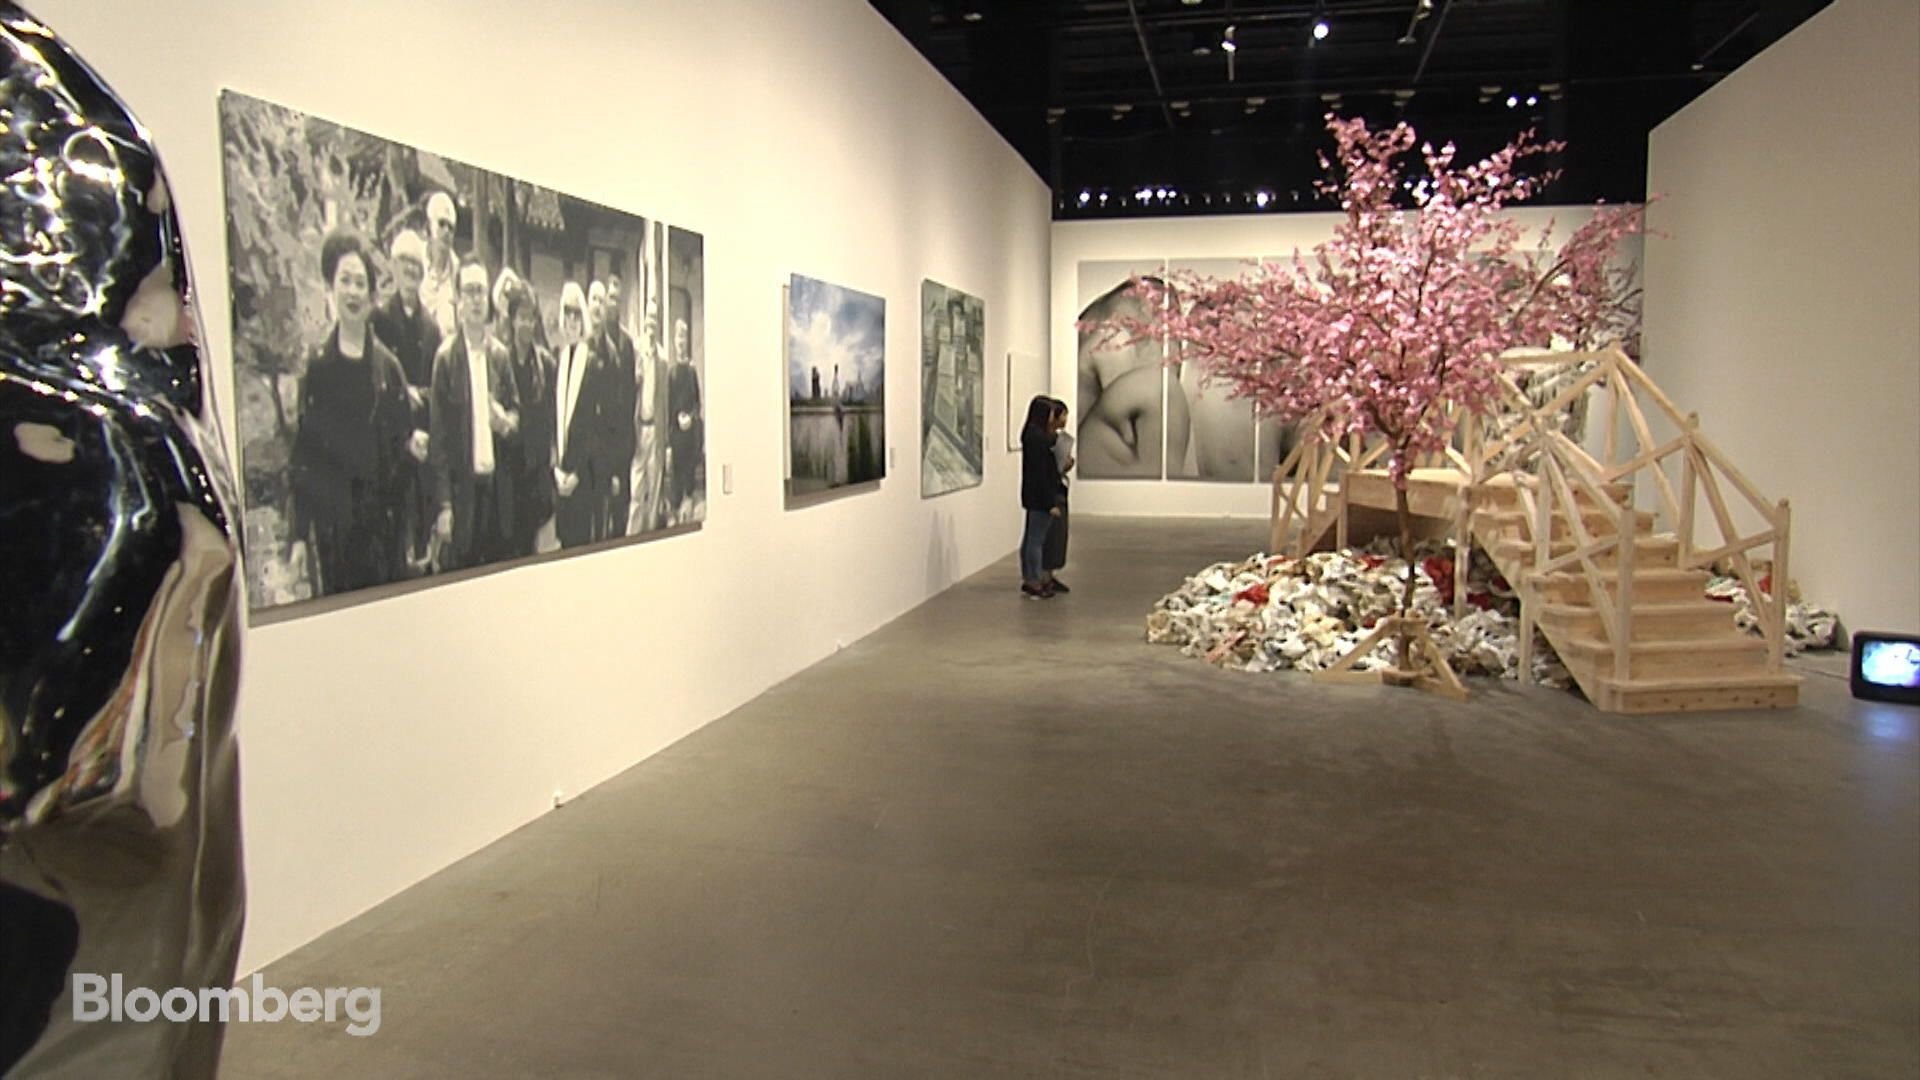 Video : The Globalization of Chinese #ContemporaryArt  https://t.co/rAqlq13pF4 via @business @ArtBasel